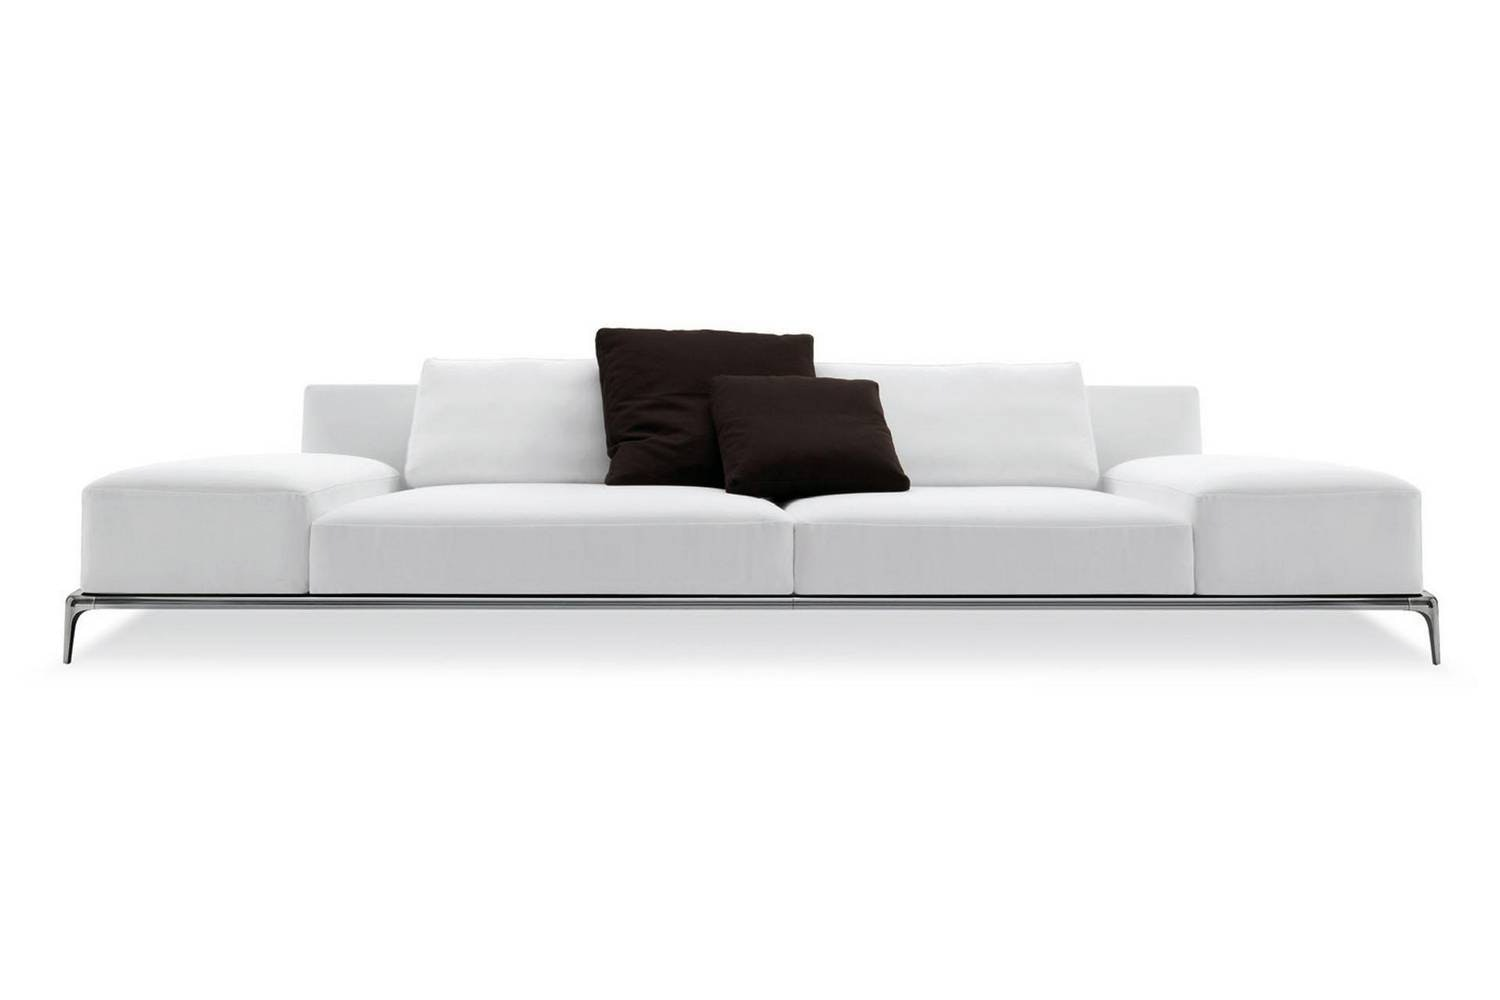 Park Sofa by Carlo Colombo for Poliform